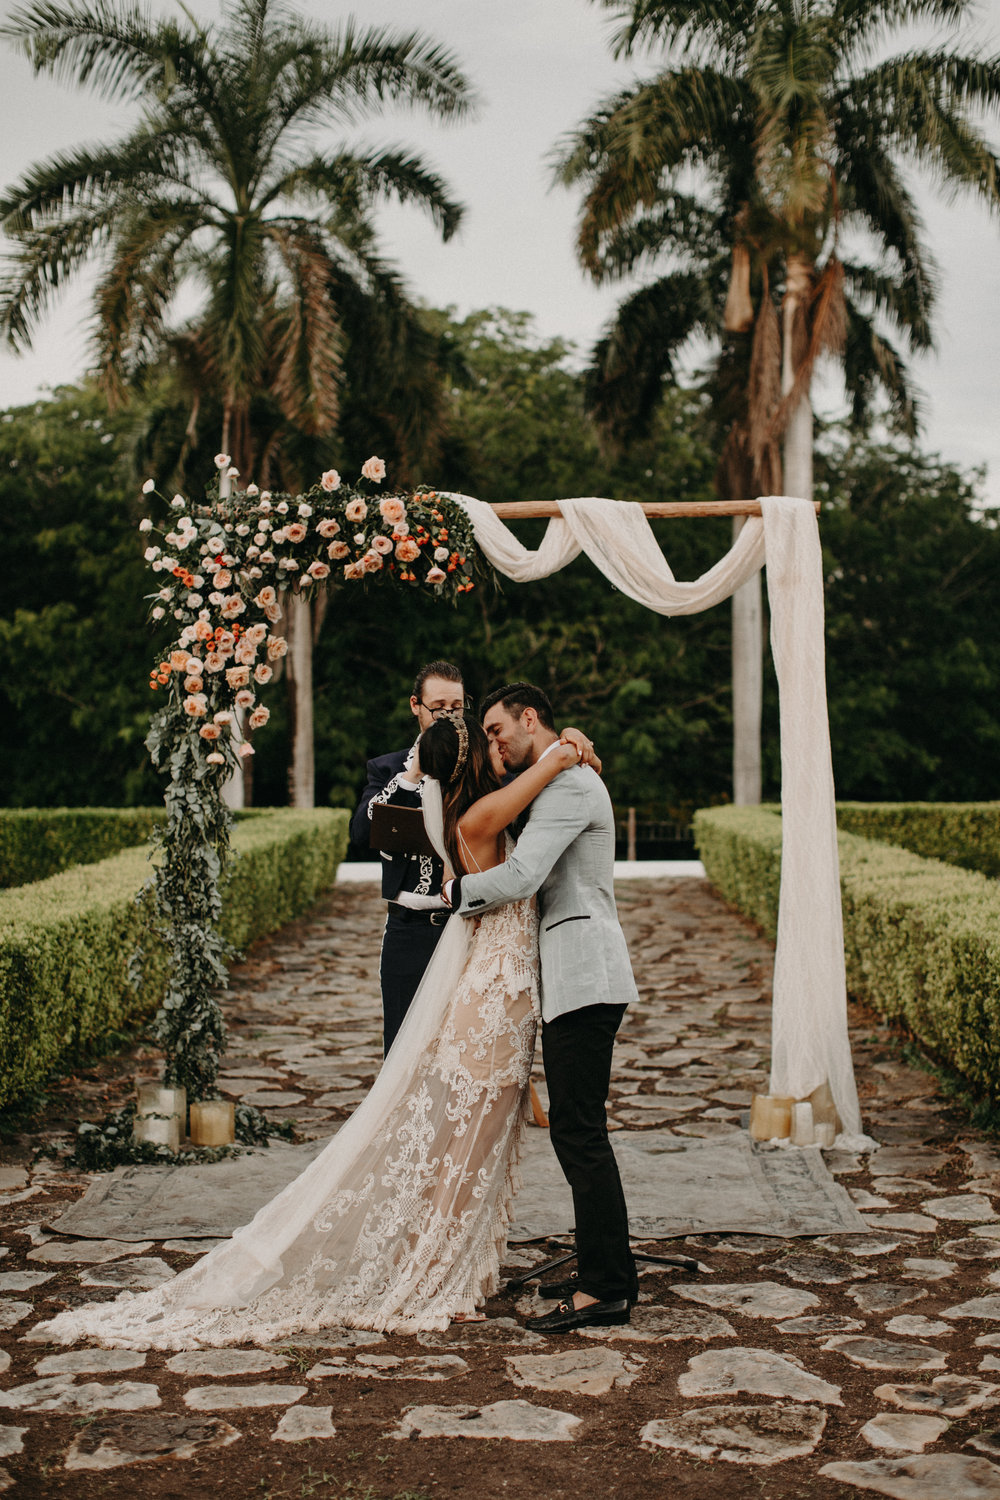 Hacienda Temozon Yucatan Mexico Wedding | Ida & Peter Emily Magers Photography-1113.jpg